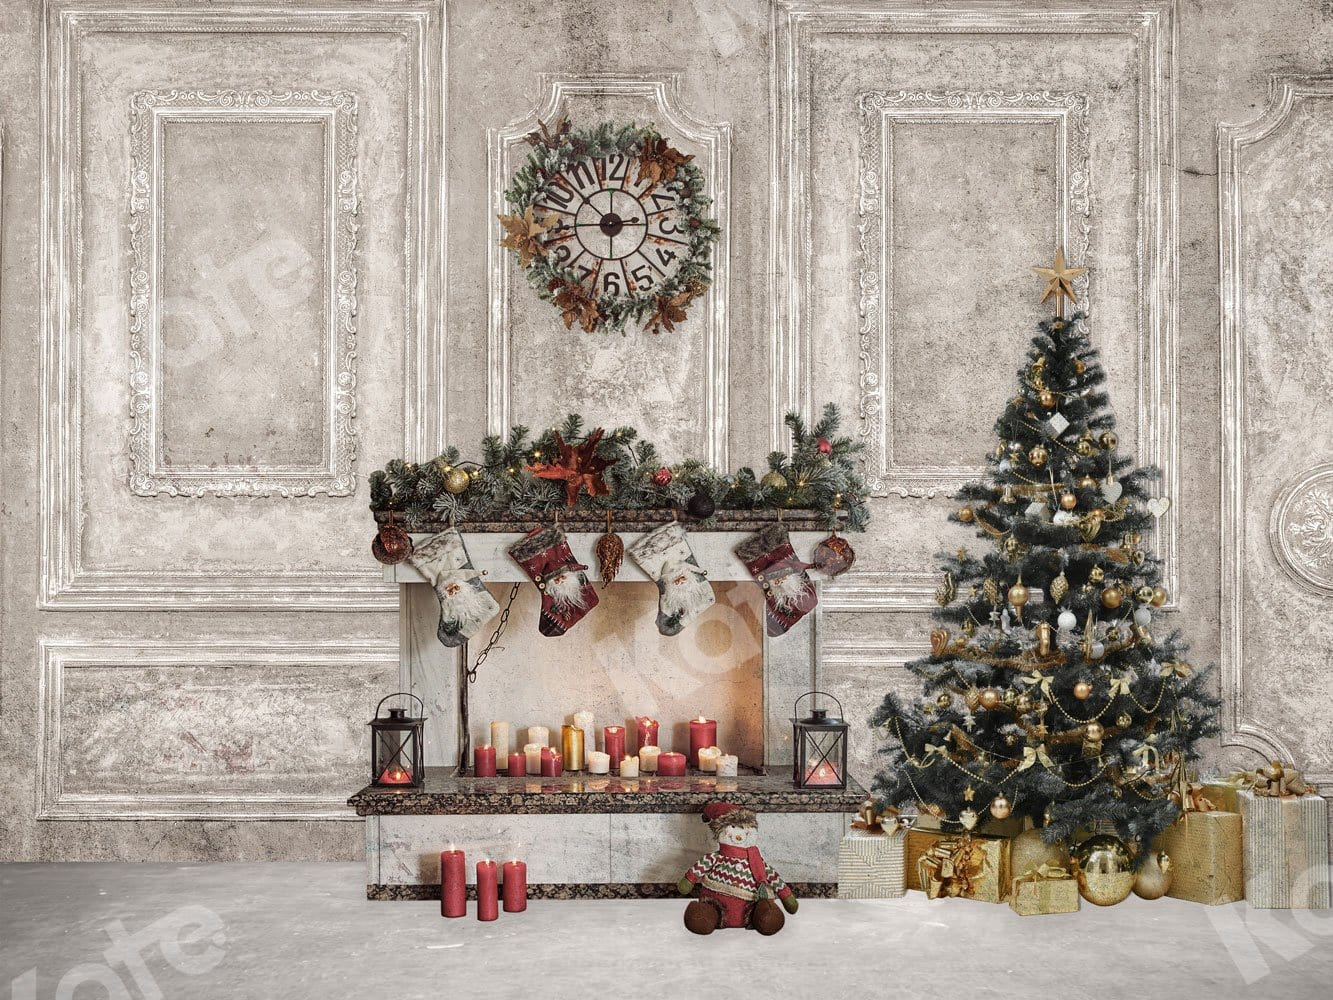 Kate 8/×8ft Christmas Photography Backdrop Dark Wood Fireplace Christmas Deer Xmas Background for Christmas Happy New Year Decoration Photography